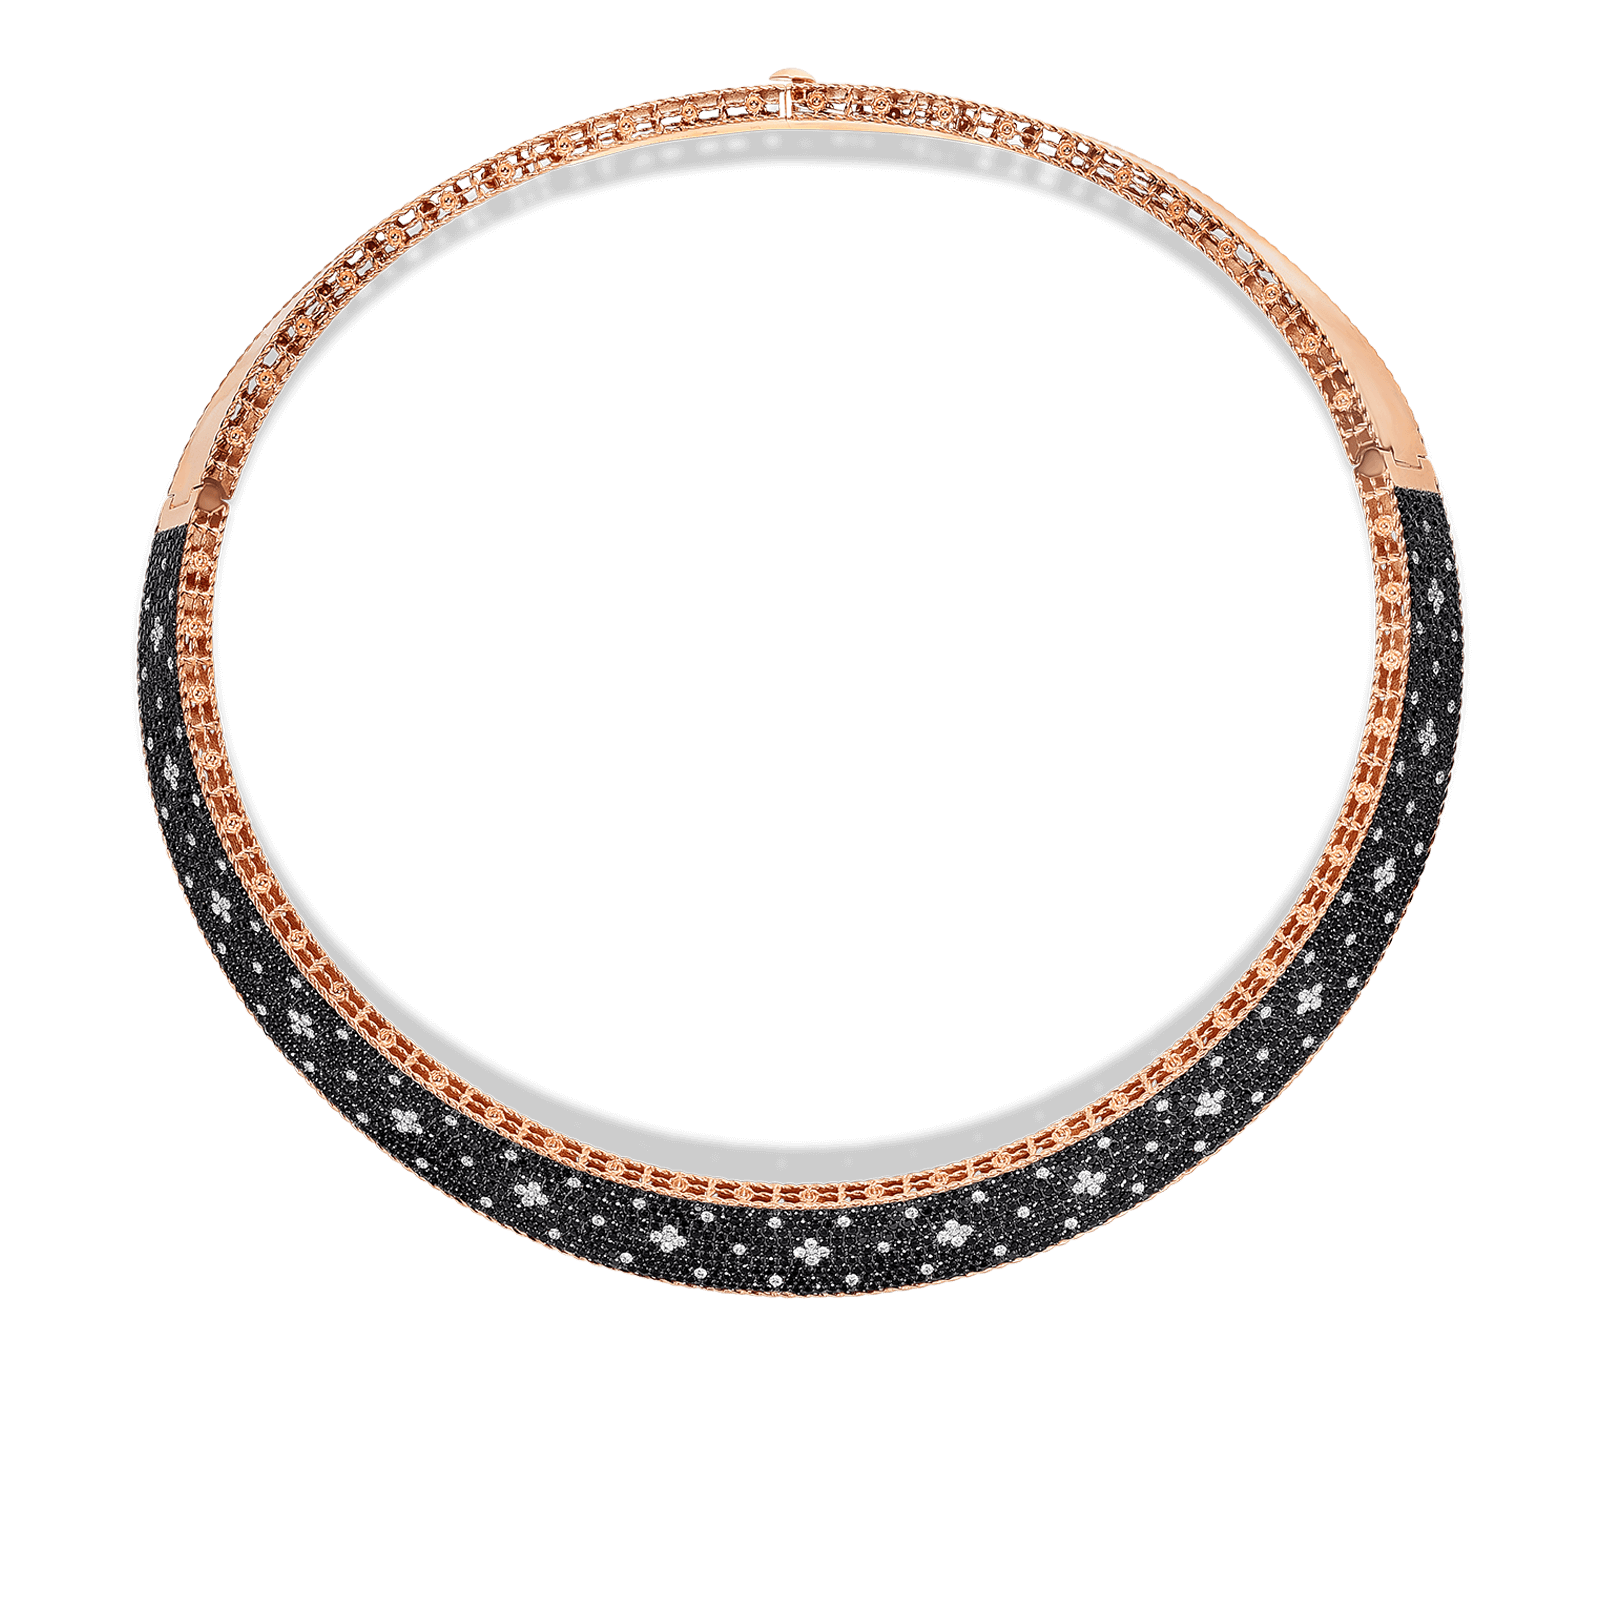 Roberto-Coin-18k-Rose-Gold-Venentian-Princess-Wide-Collar-with-Black-and-White-Fleur-de-Lis-Diamonds-8882251axcox_Top